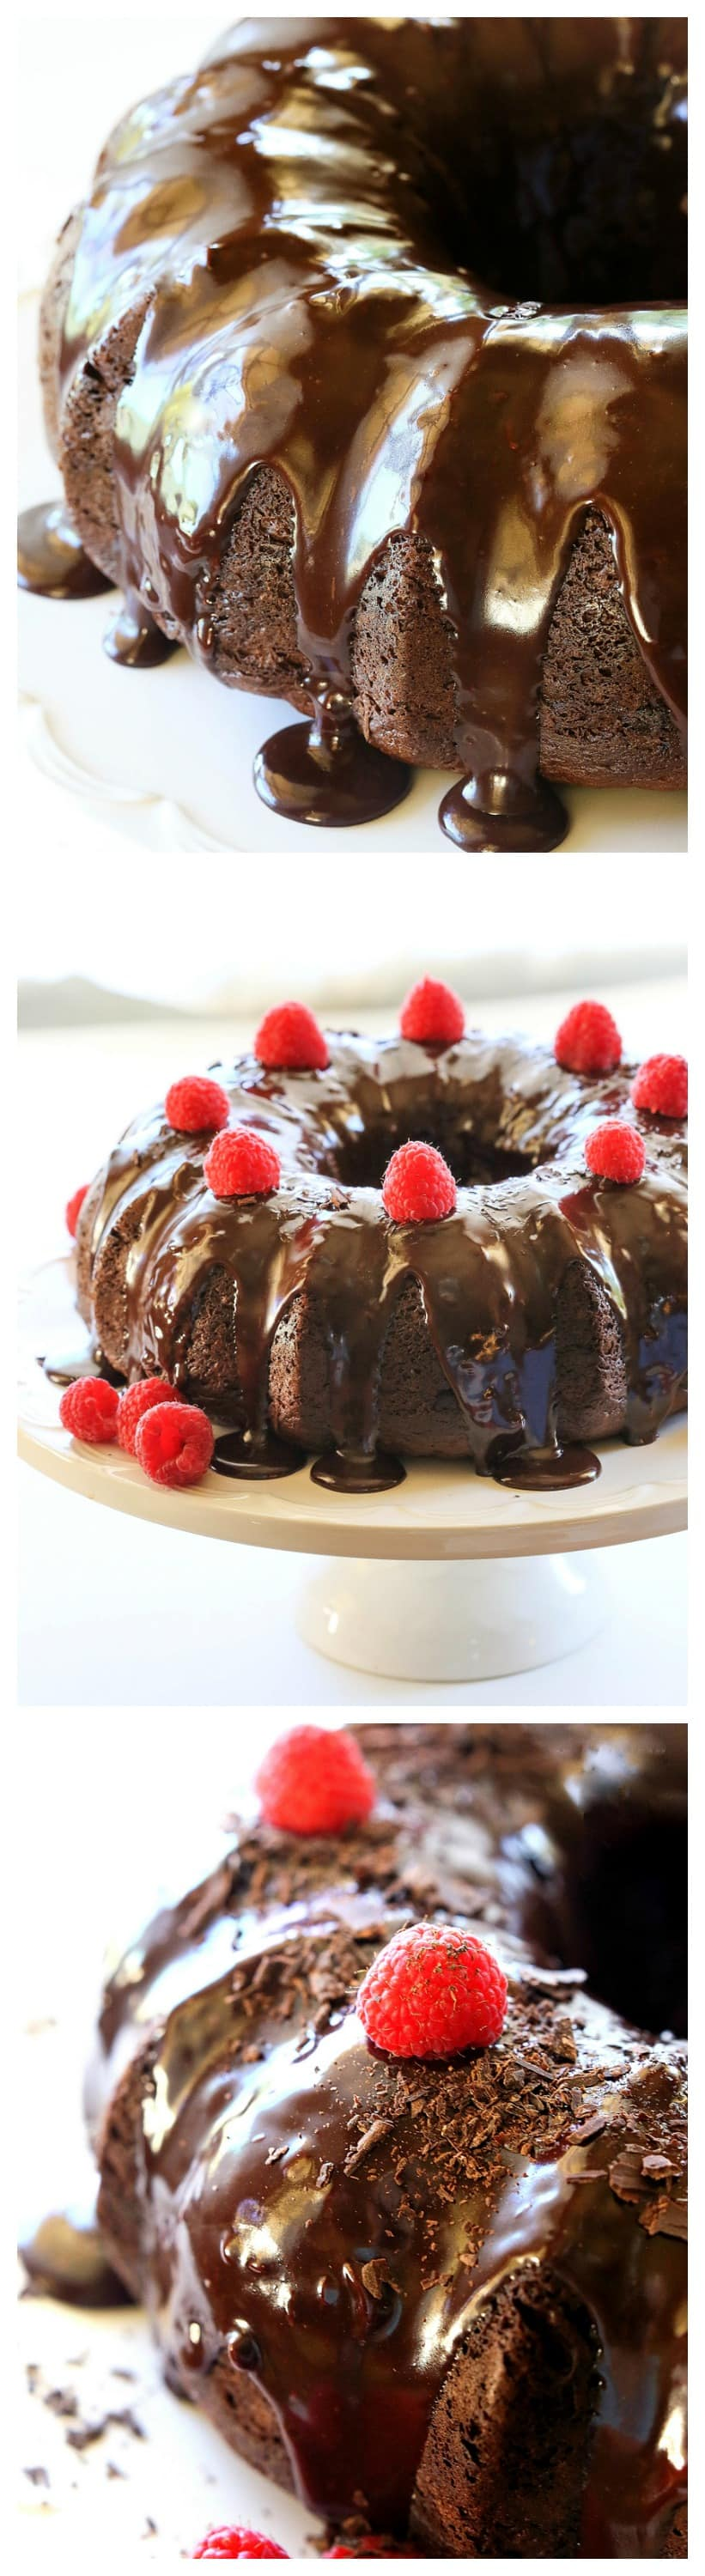 This Easy Chocolate Bundt Cake will make you a rock star with your friends and family. An incredibly moist cake topped with decadent chocolate glaze. #easy #chocolate #bundt #cake #dessert